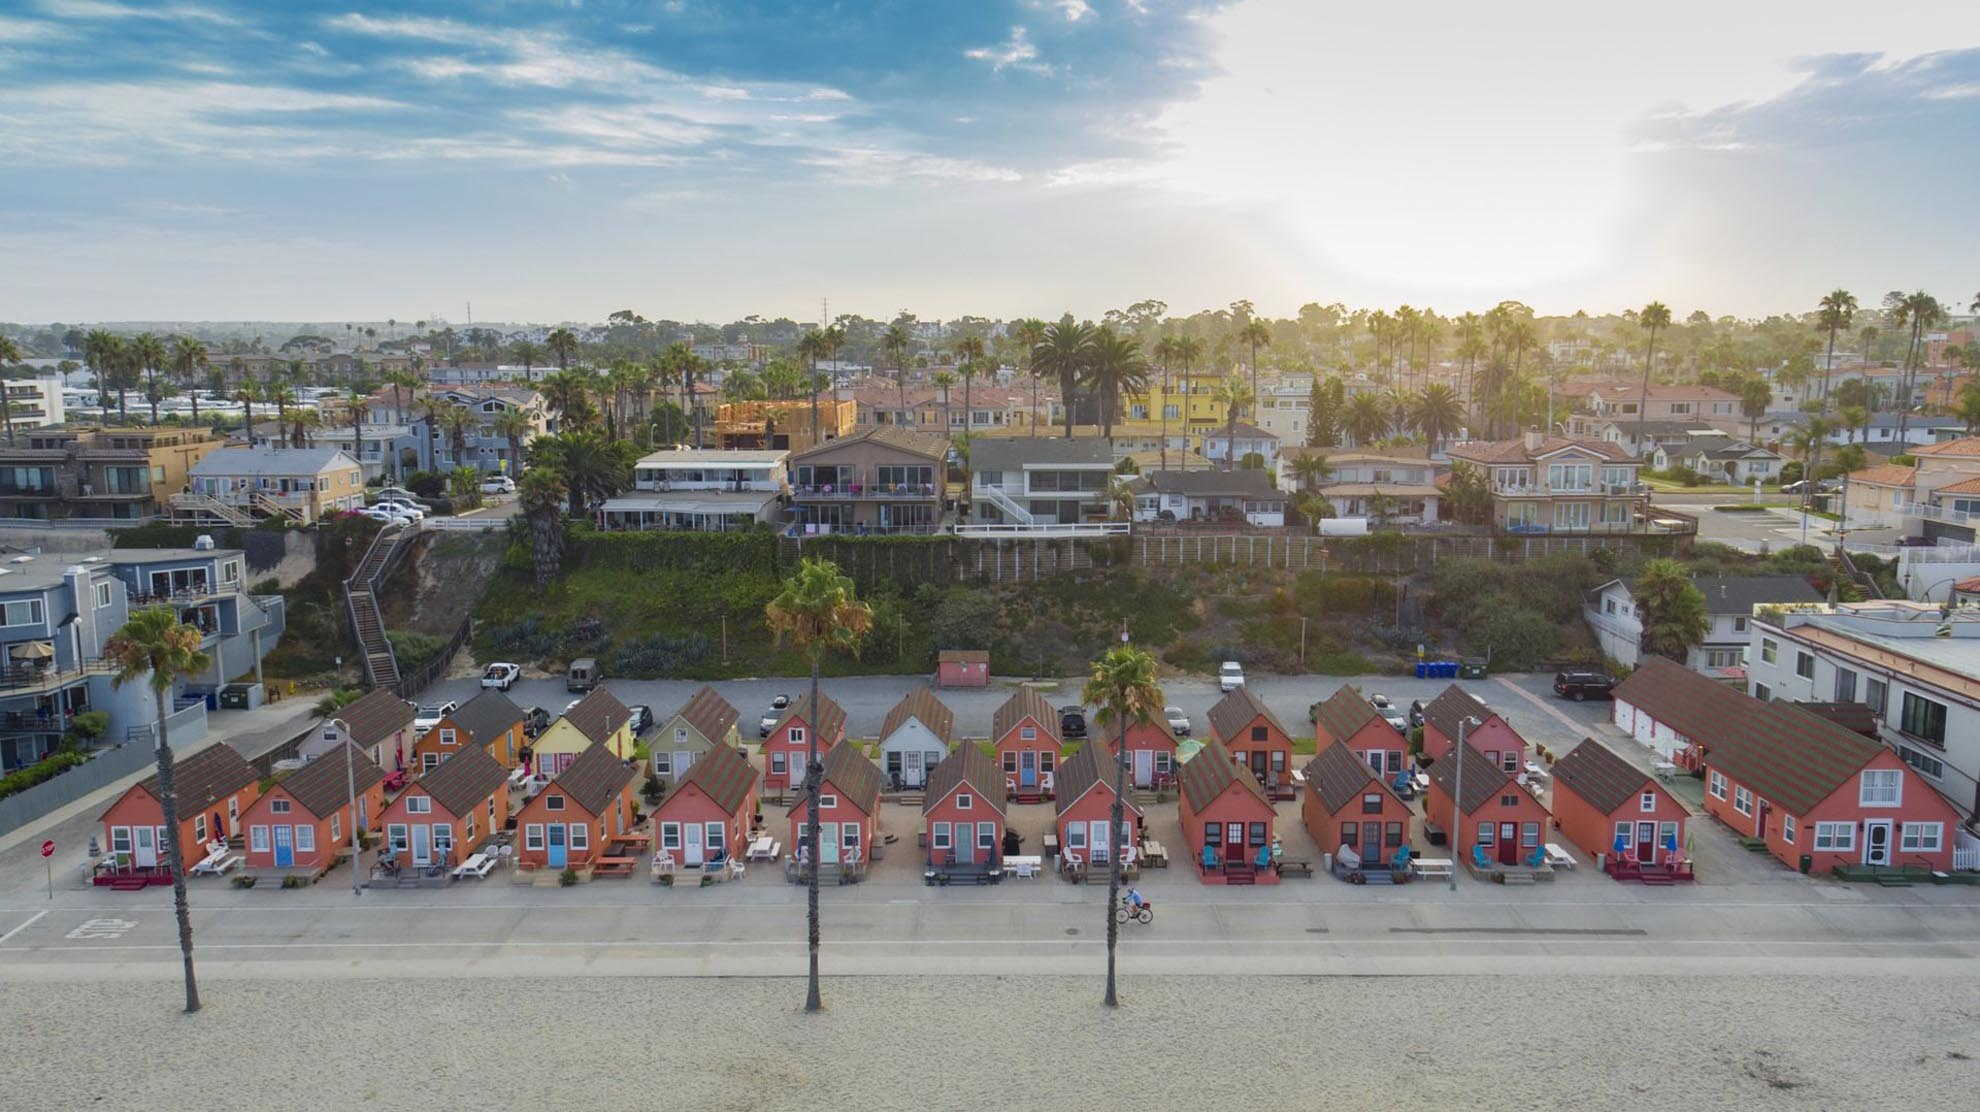 Drone photograph of Roberts Cottages Oceanside California